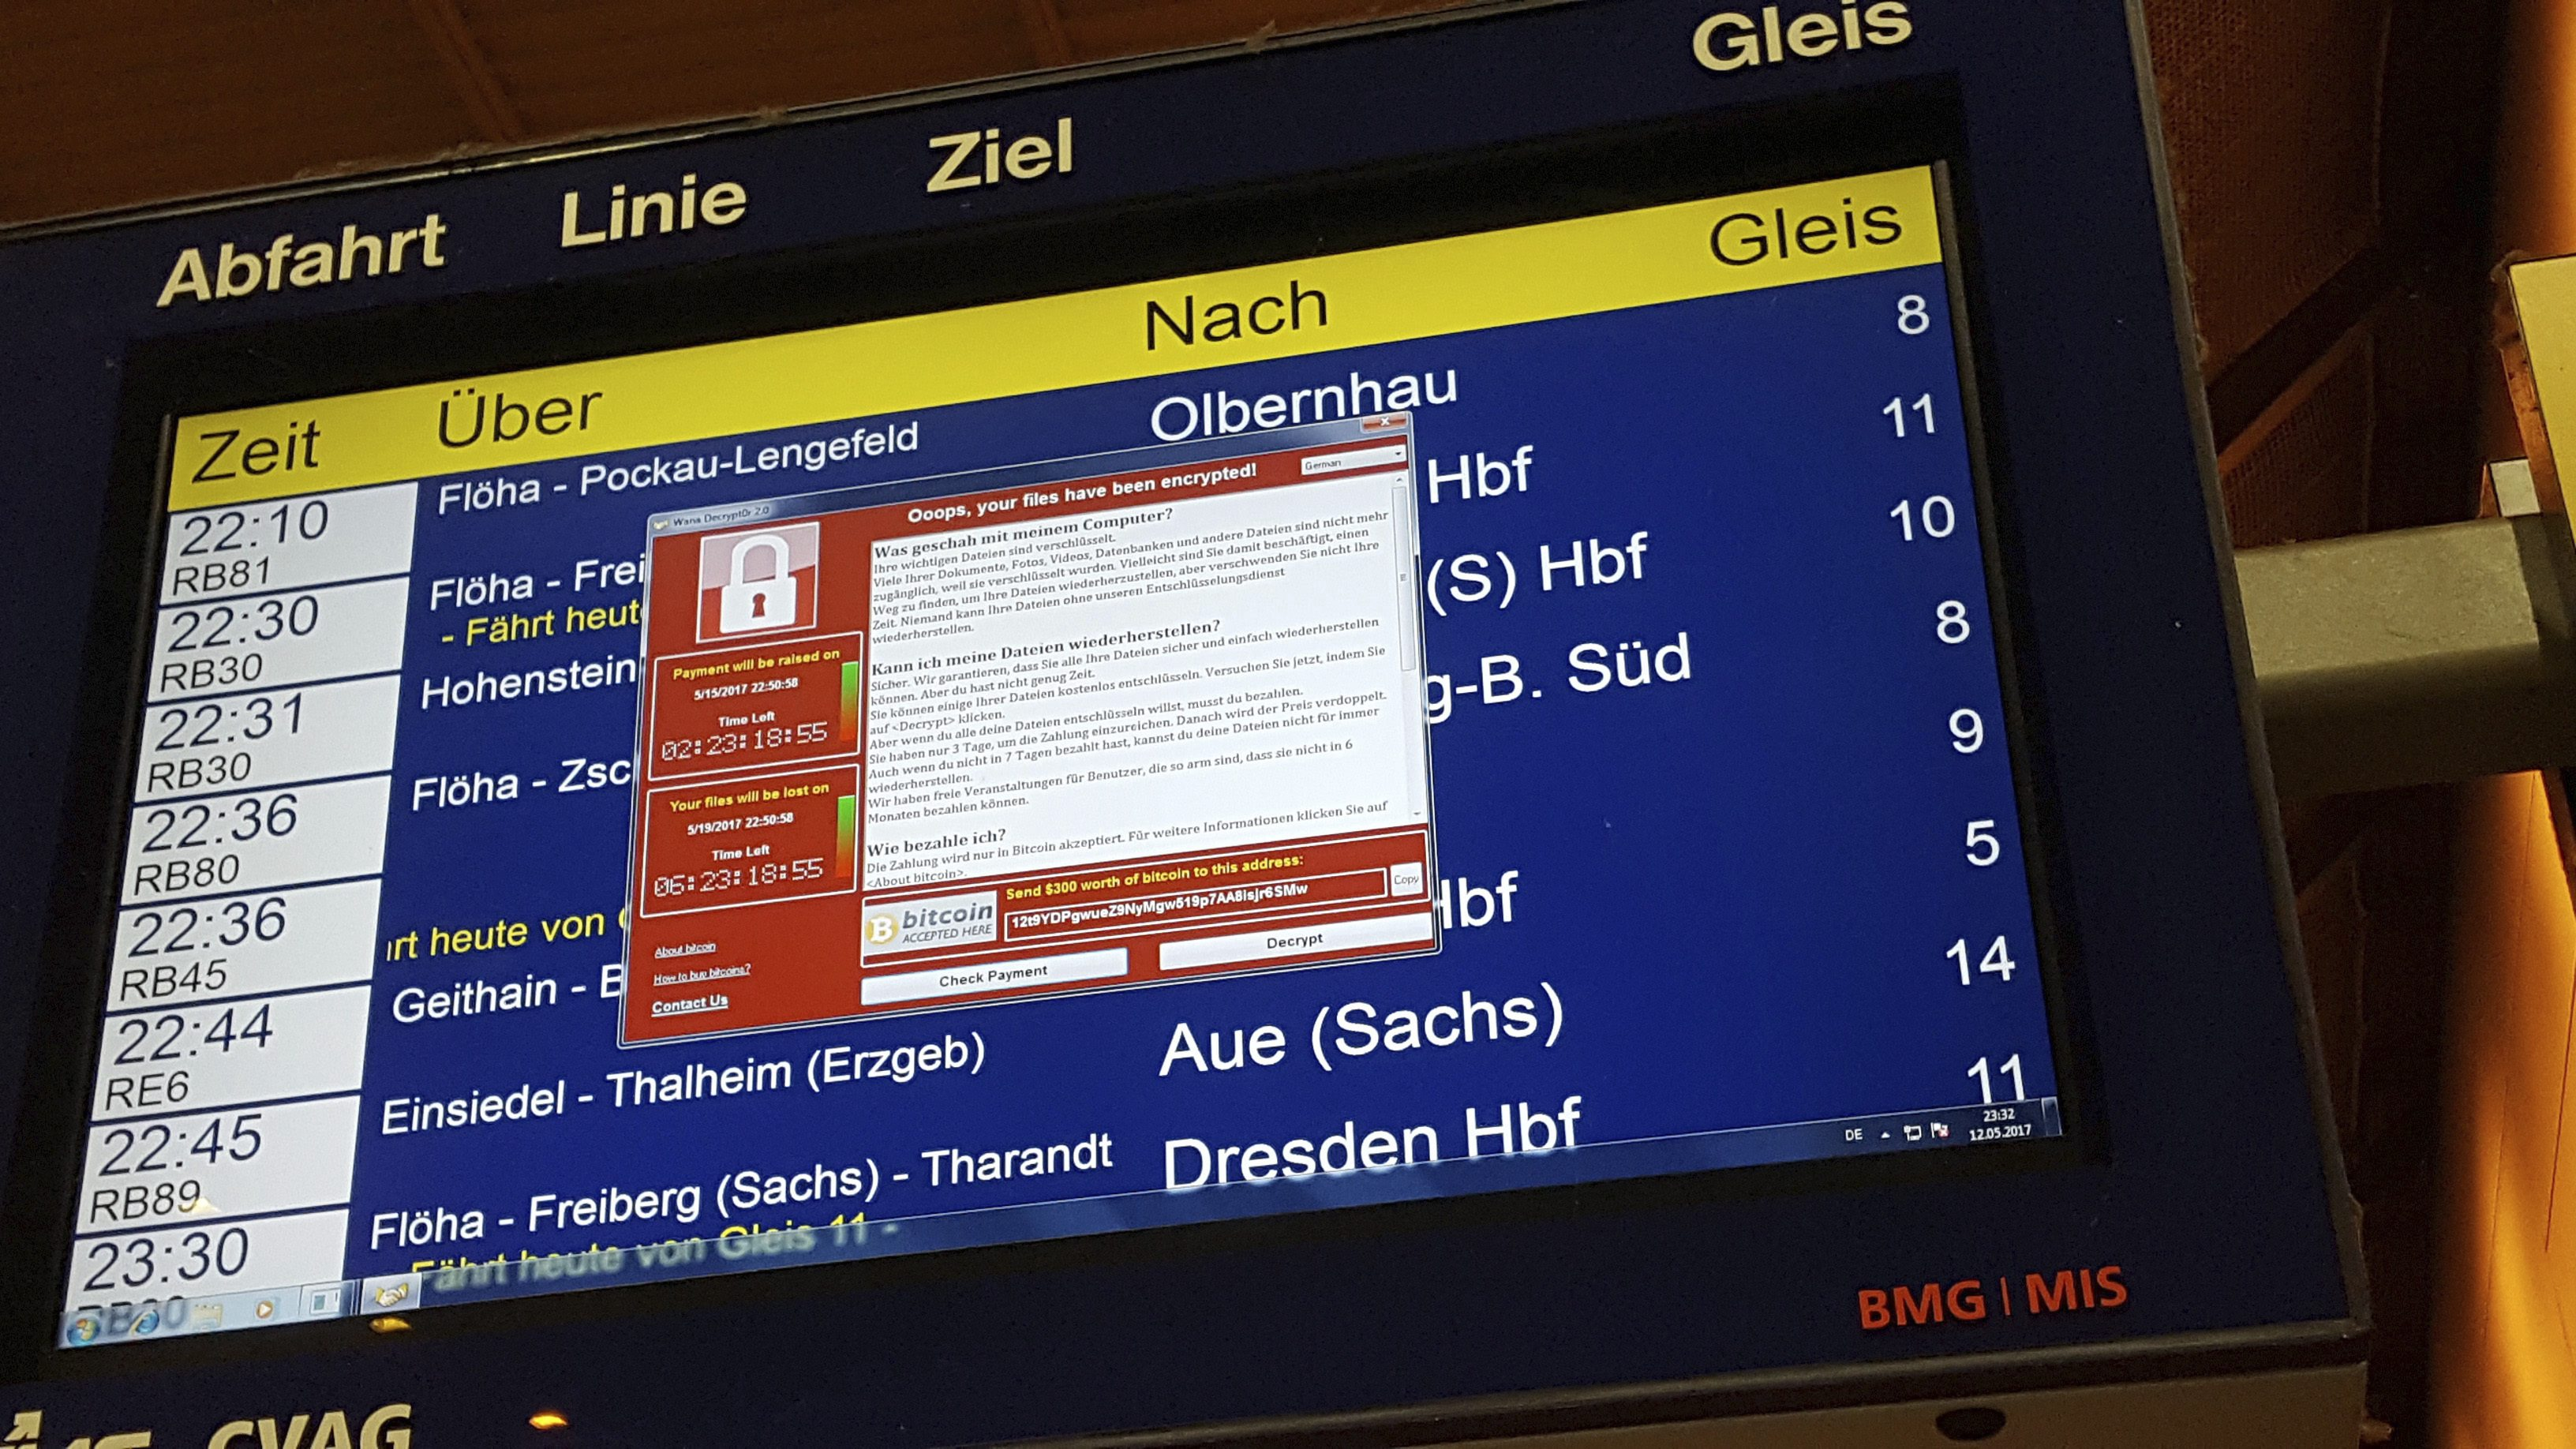 Germany's national railway says that it was among the organizations affected by the global cyberattack